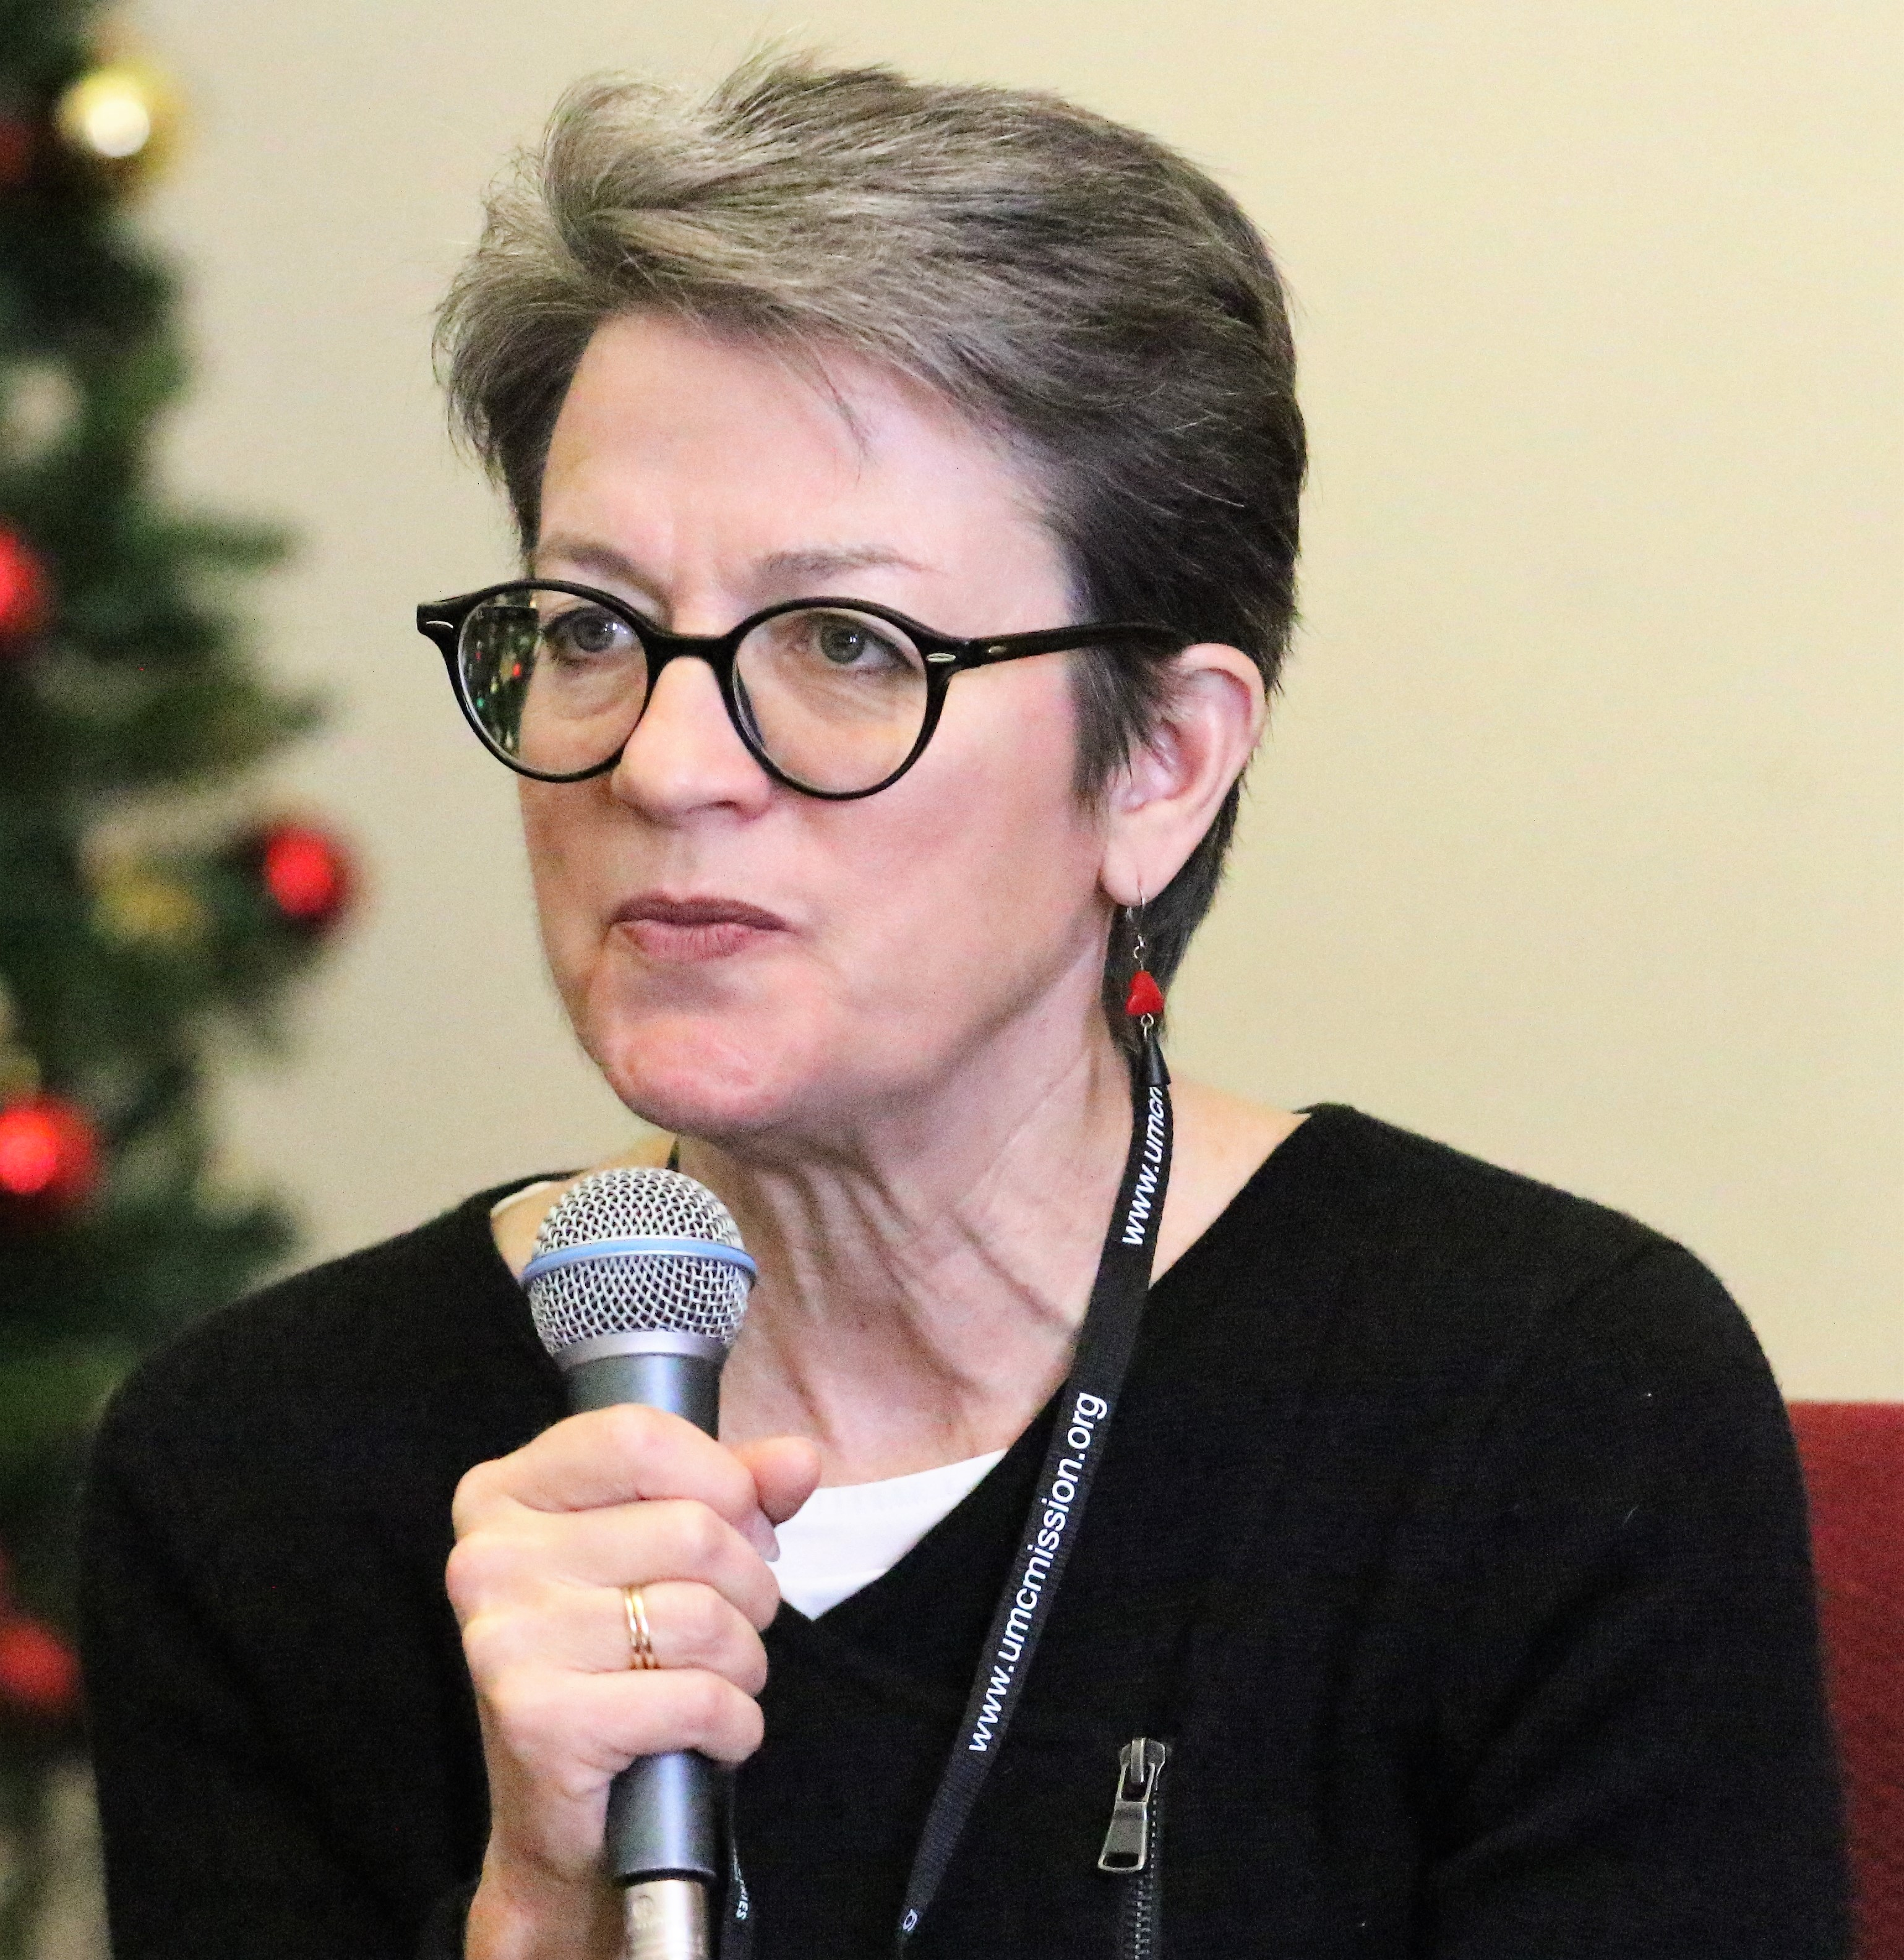 Bishop Sally Dyck said she wanted to hear the concerns of Korean United Methodists at the meeting. Photo by Thomas Kim, UMNS.